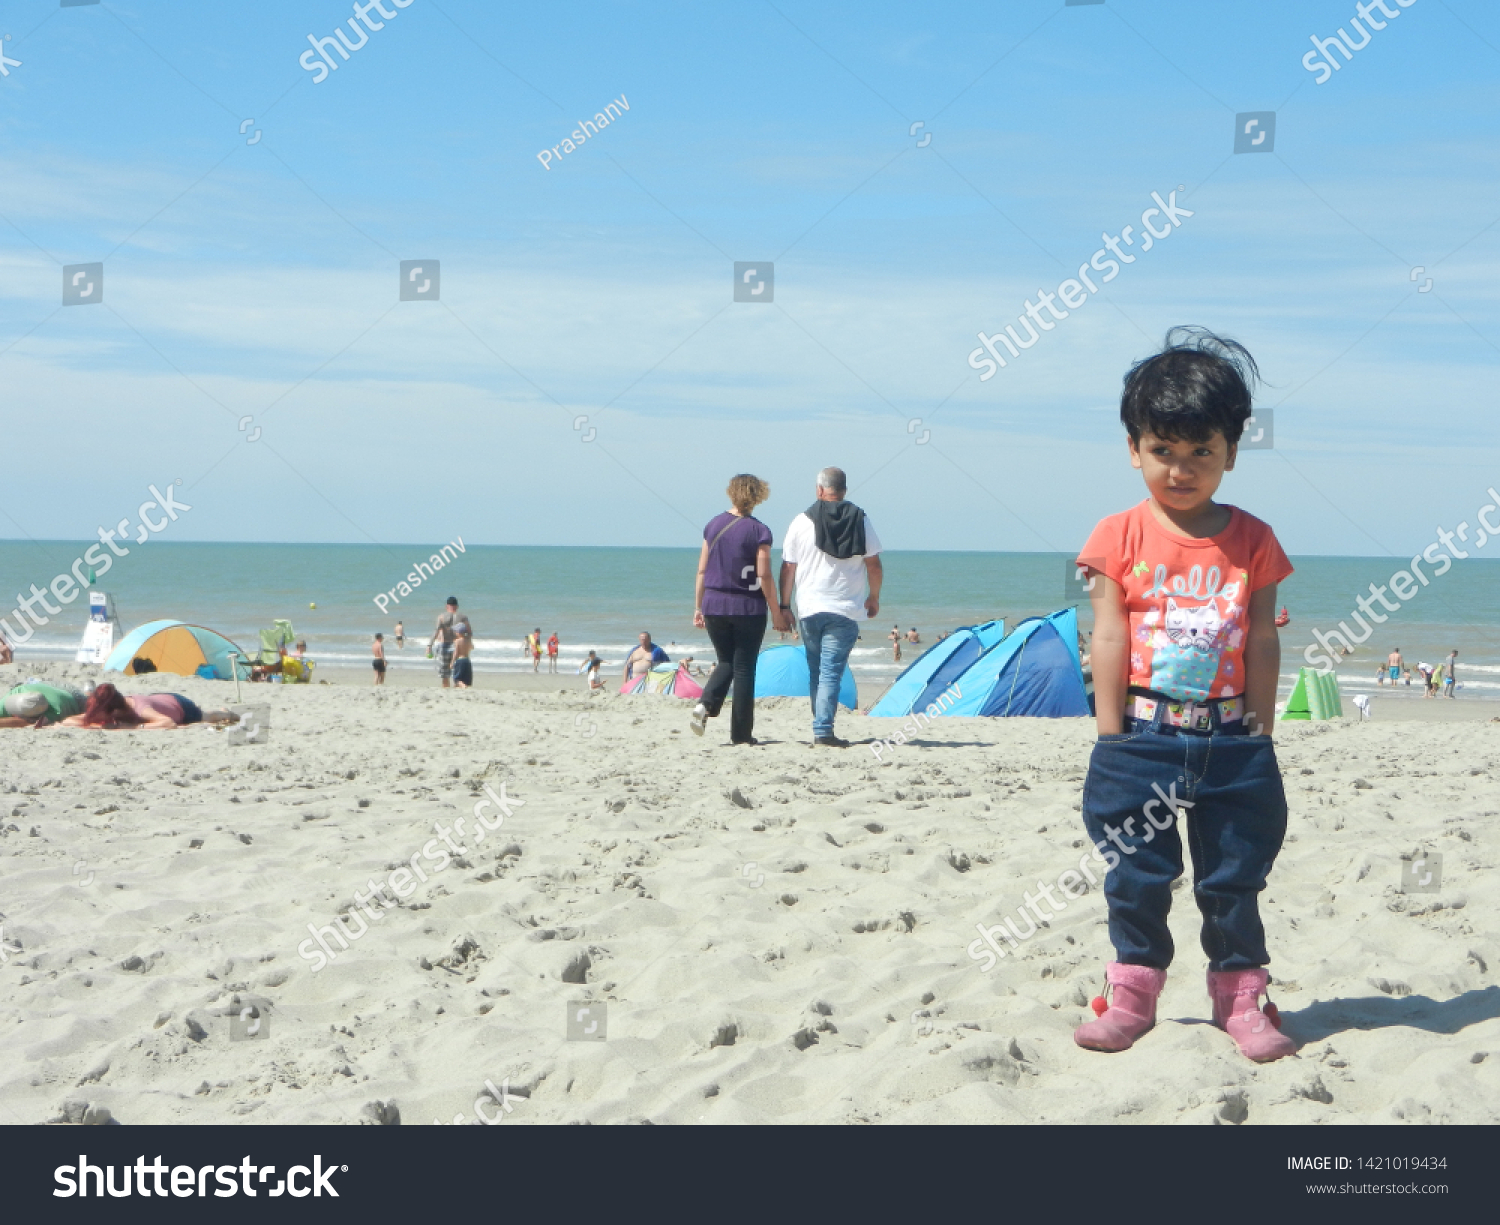 ostendo beach, ostendo, europe, 15th august, 2019: a cute young girl putting hands in her jeans pocket, wearing jeans and orange top, standing on a sand beach with people in the background.